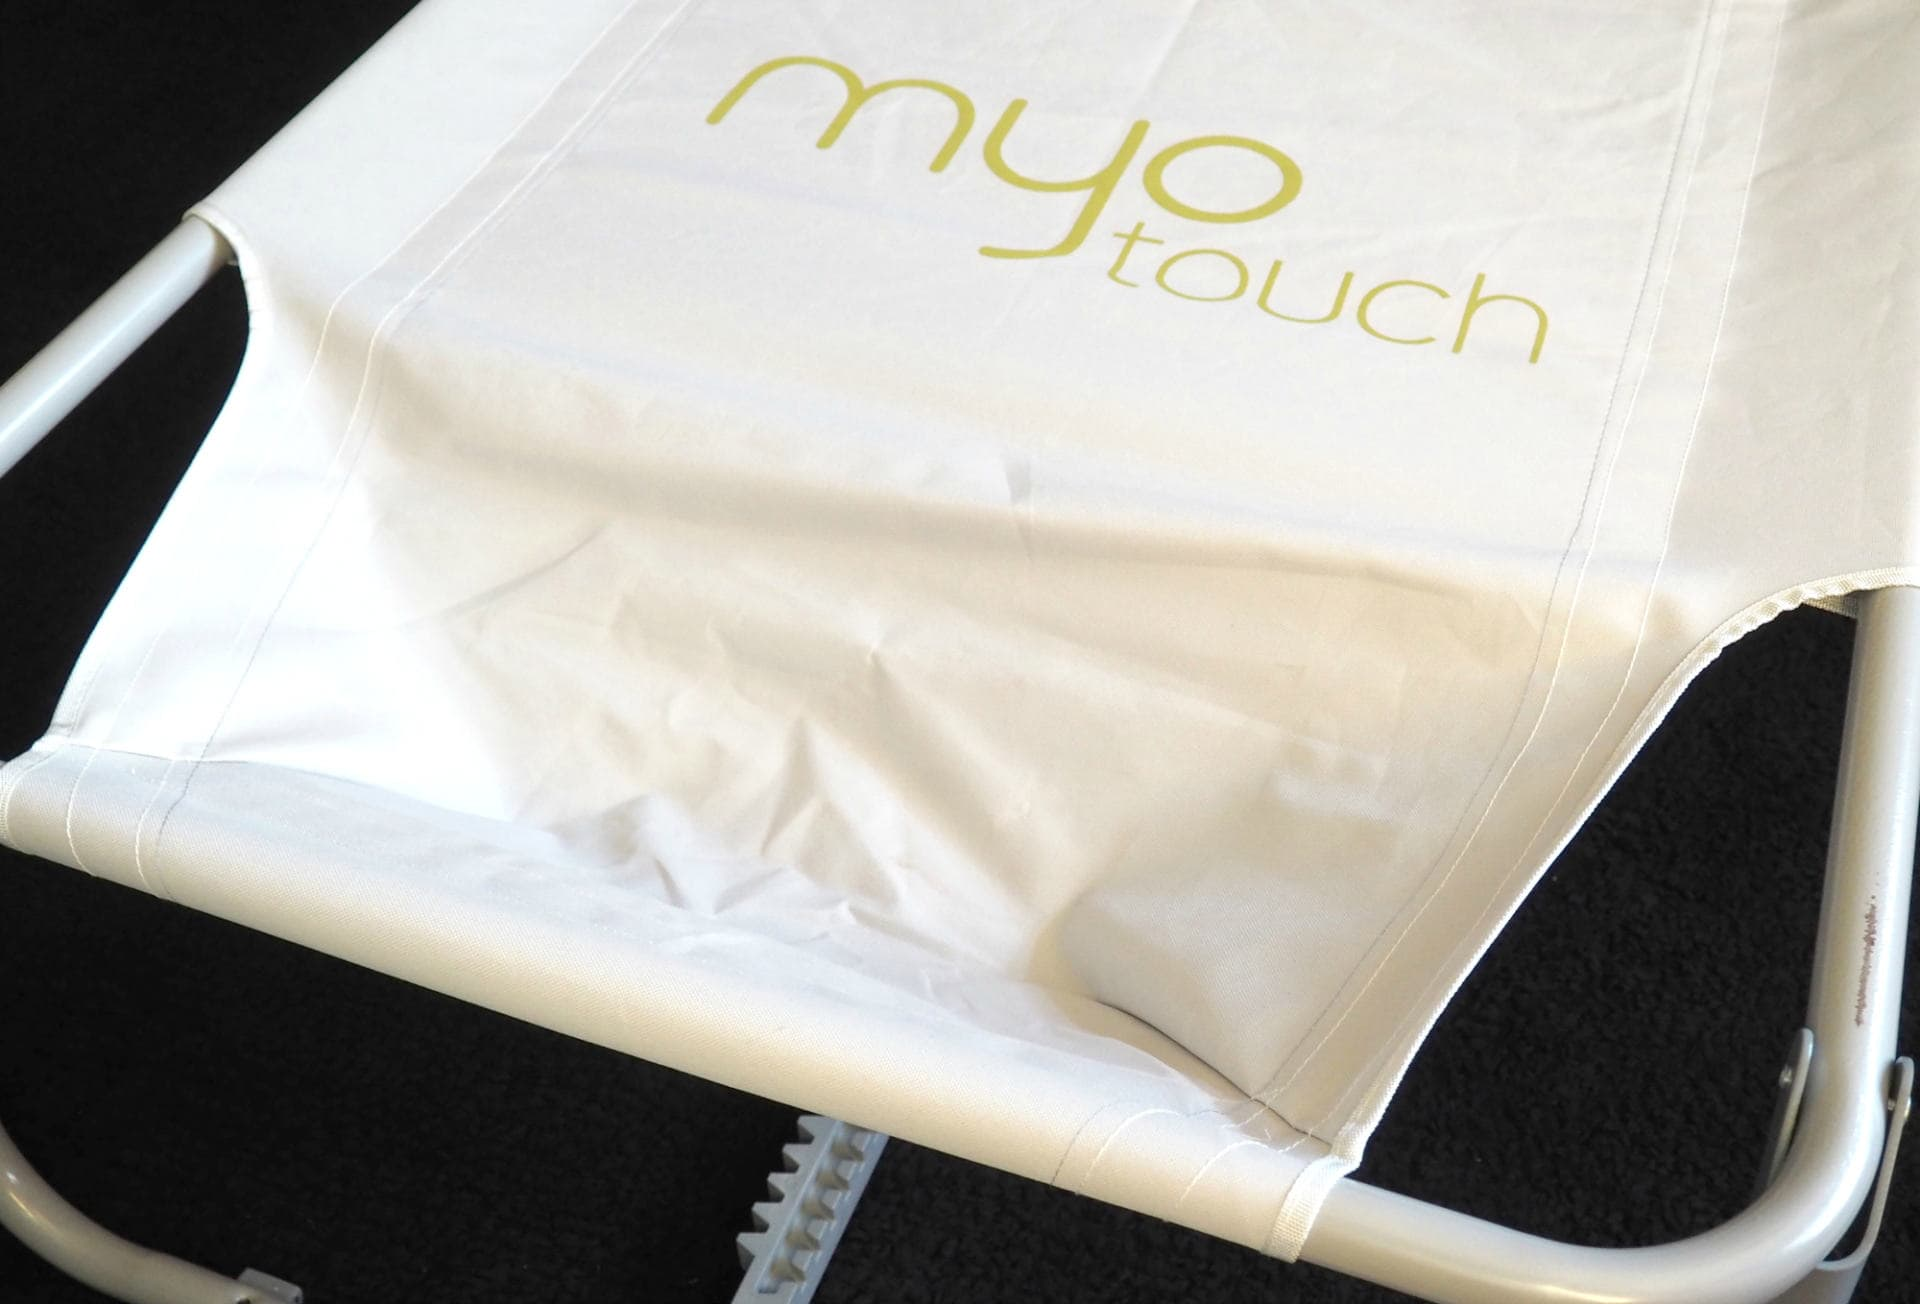 Gtech MYO Touch Massage Bed Review